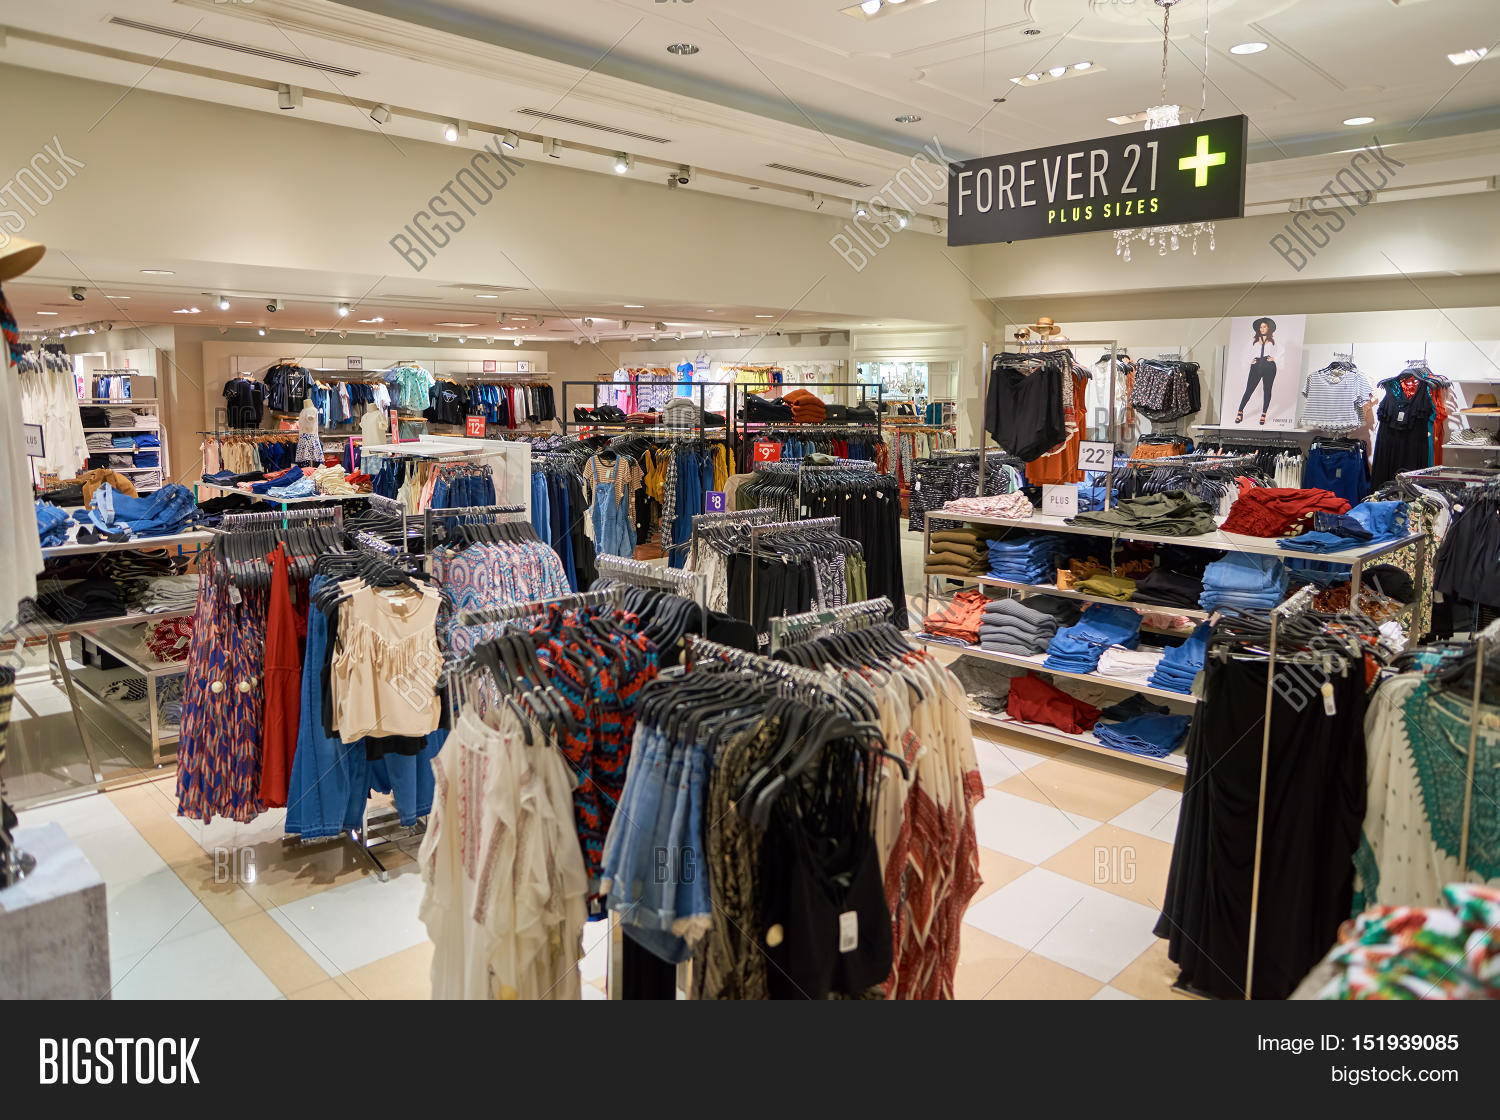 Forever 21 clothes store